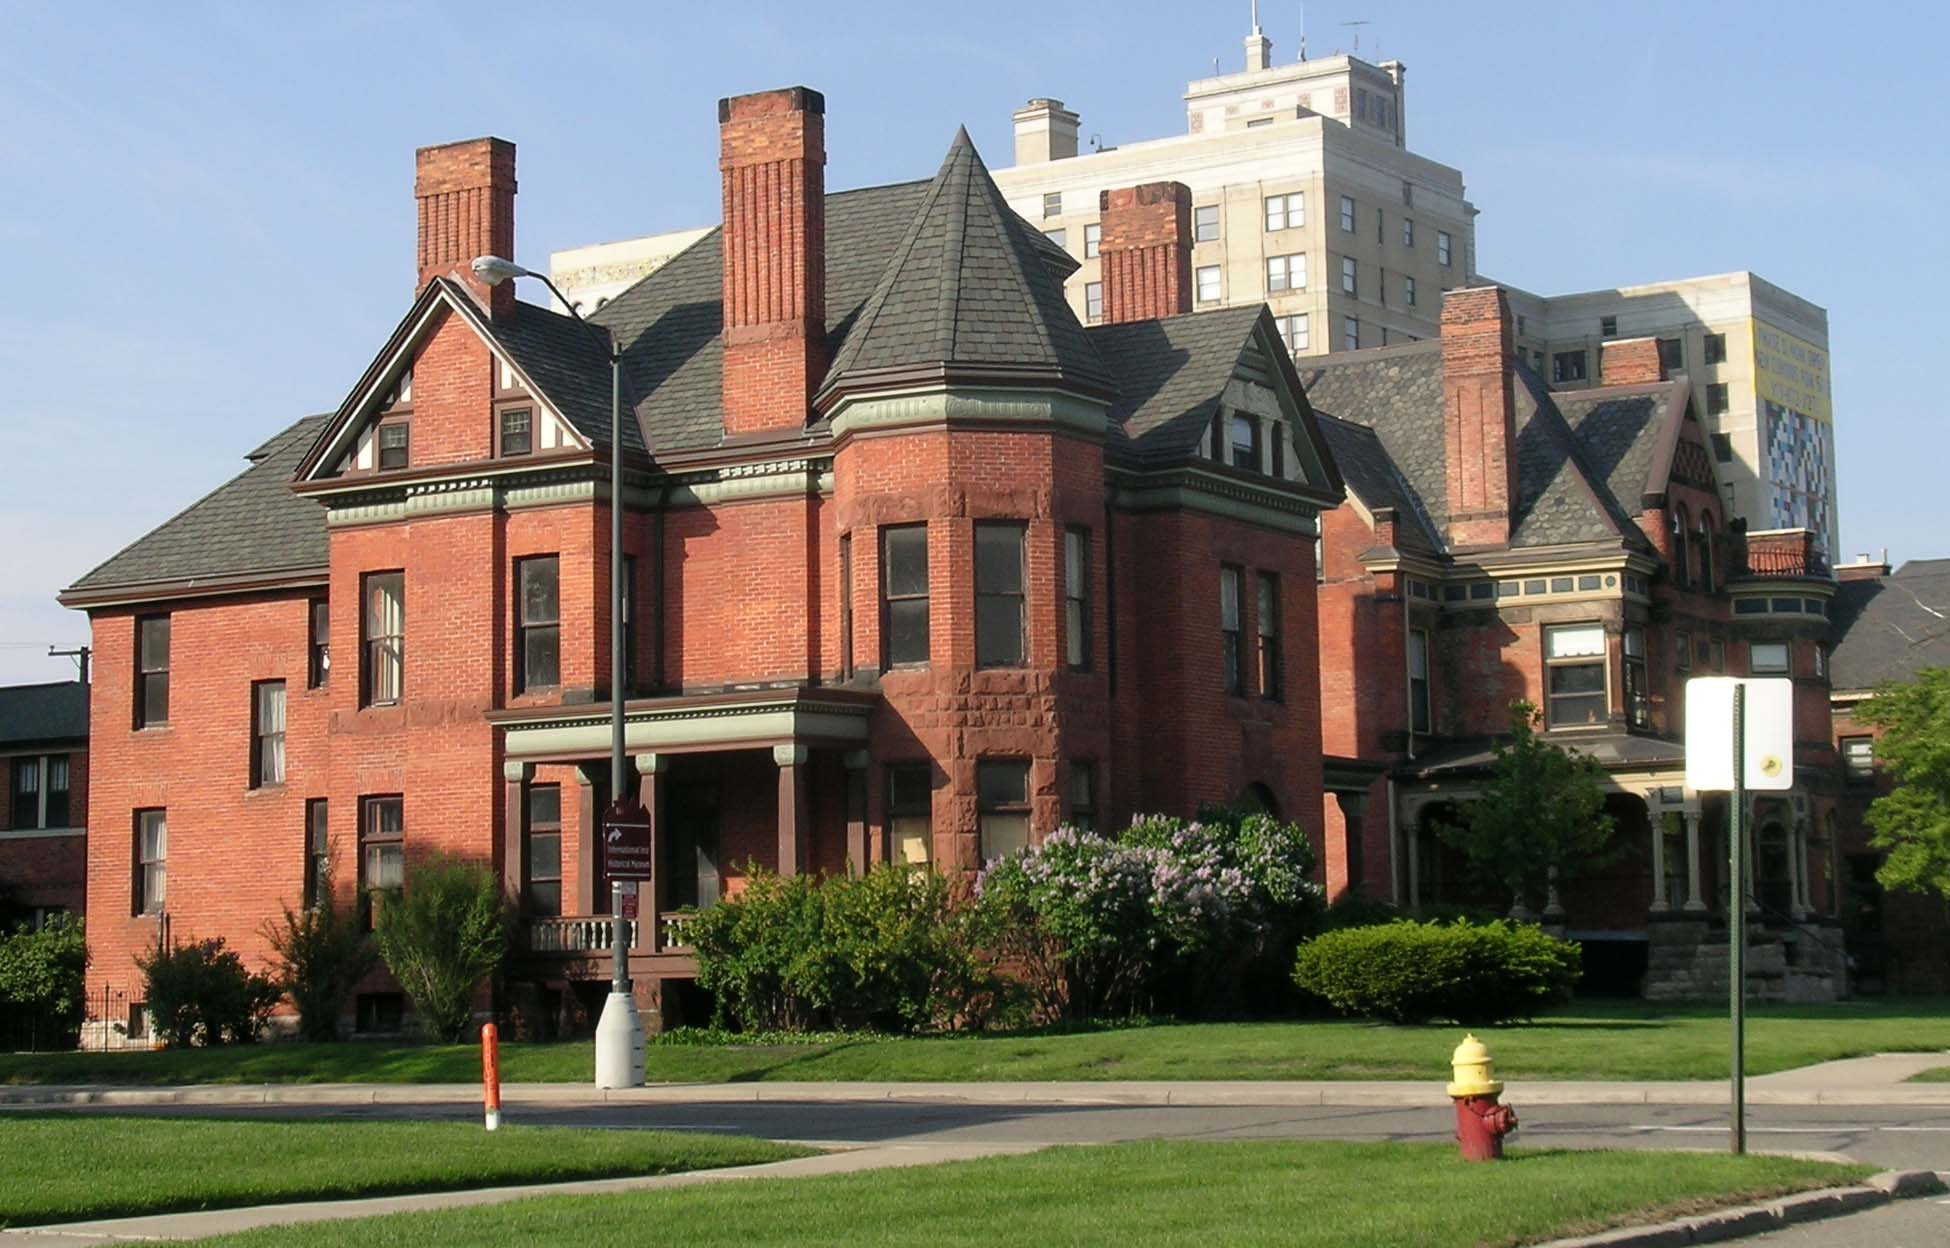 1000+ images about Historic Homes & places on Pinterest ...